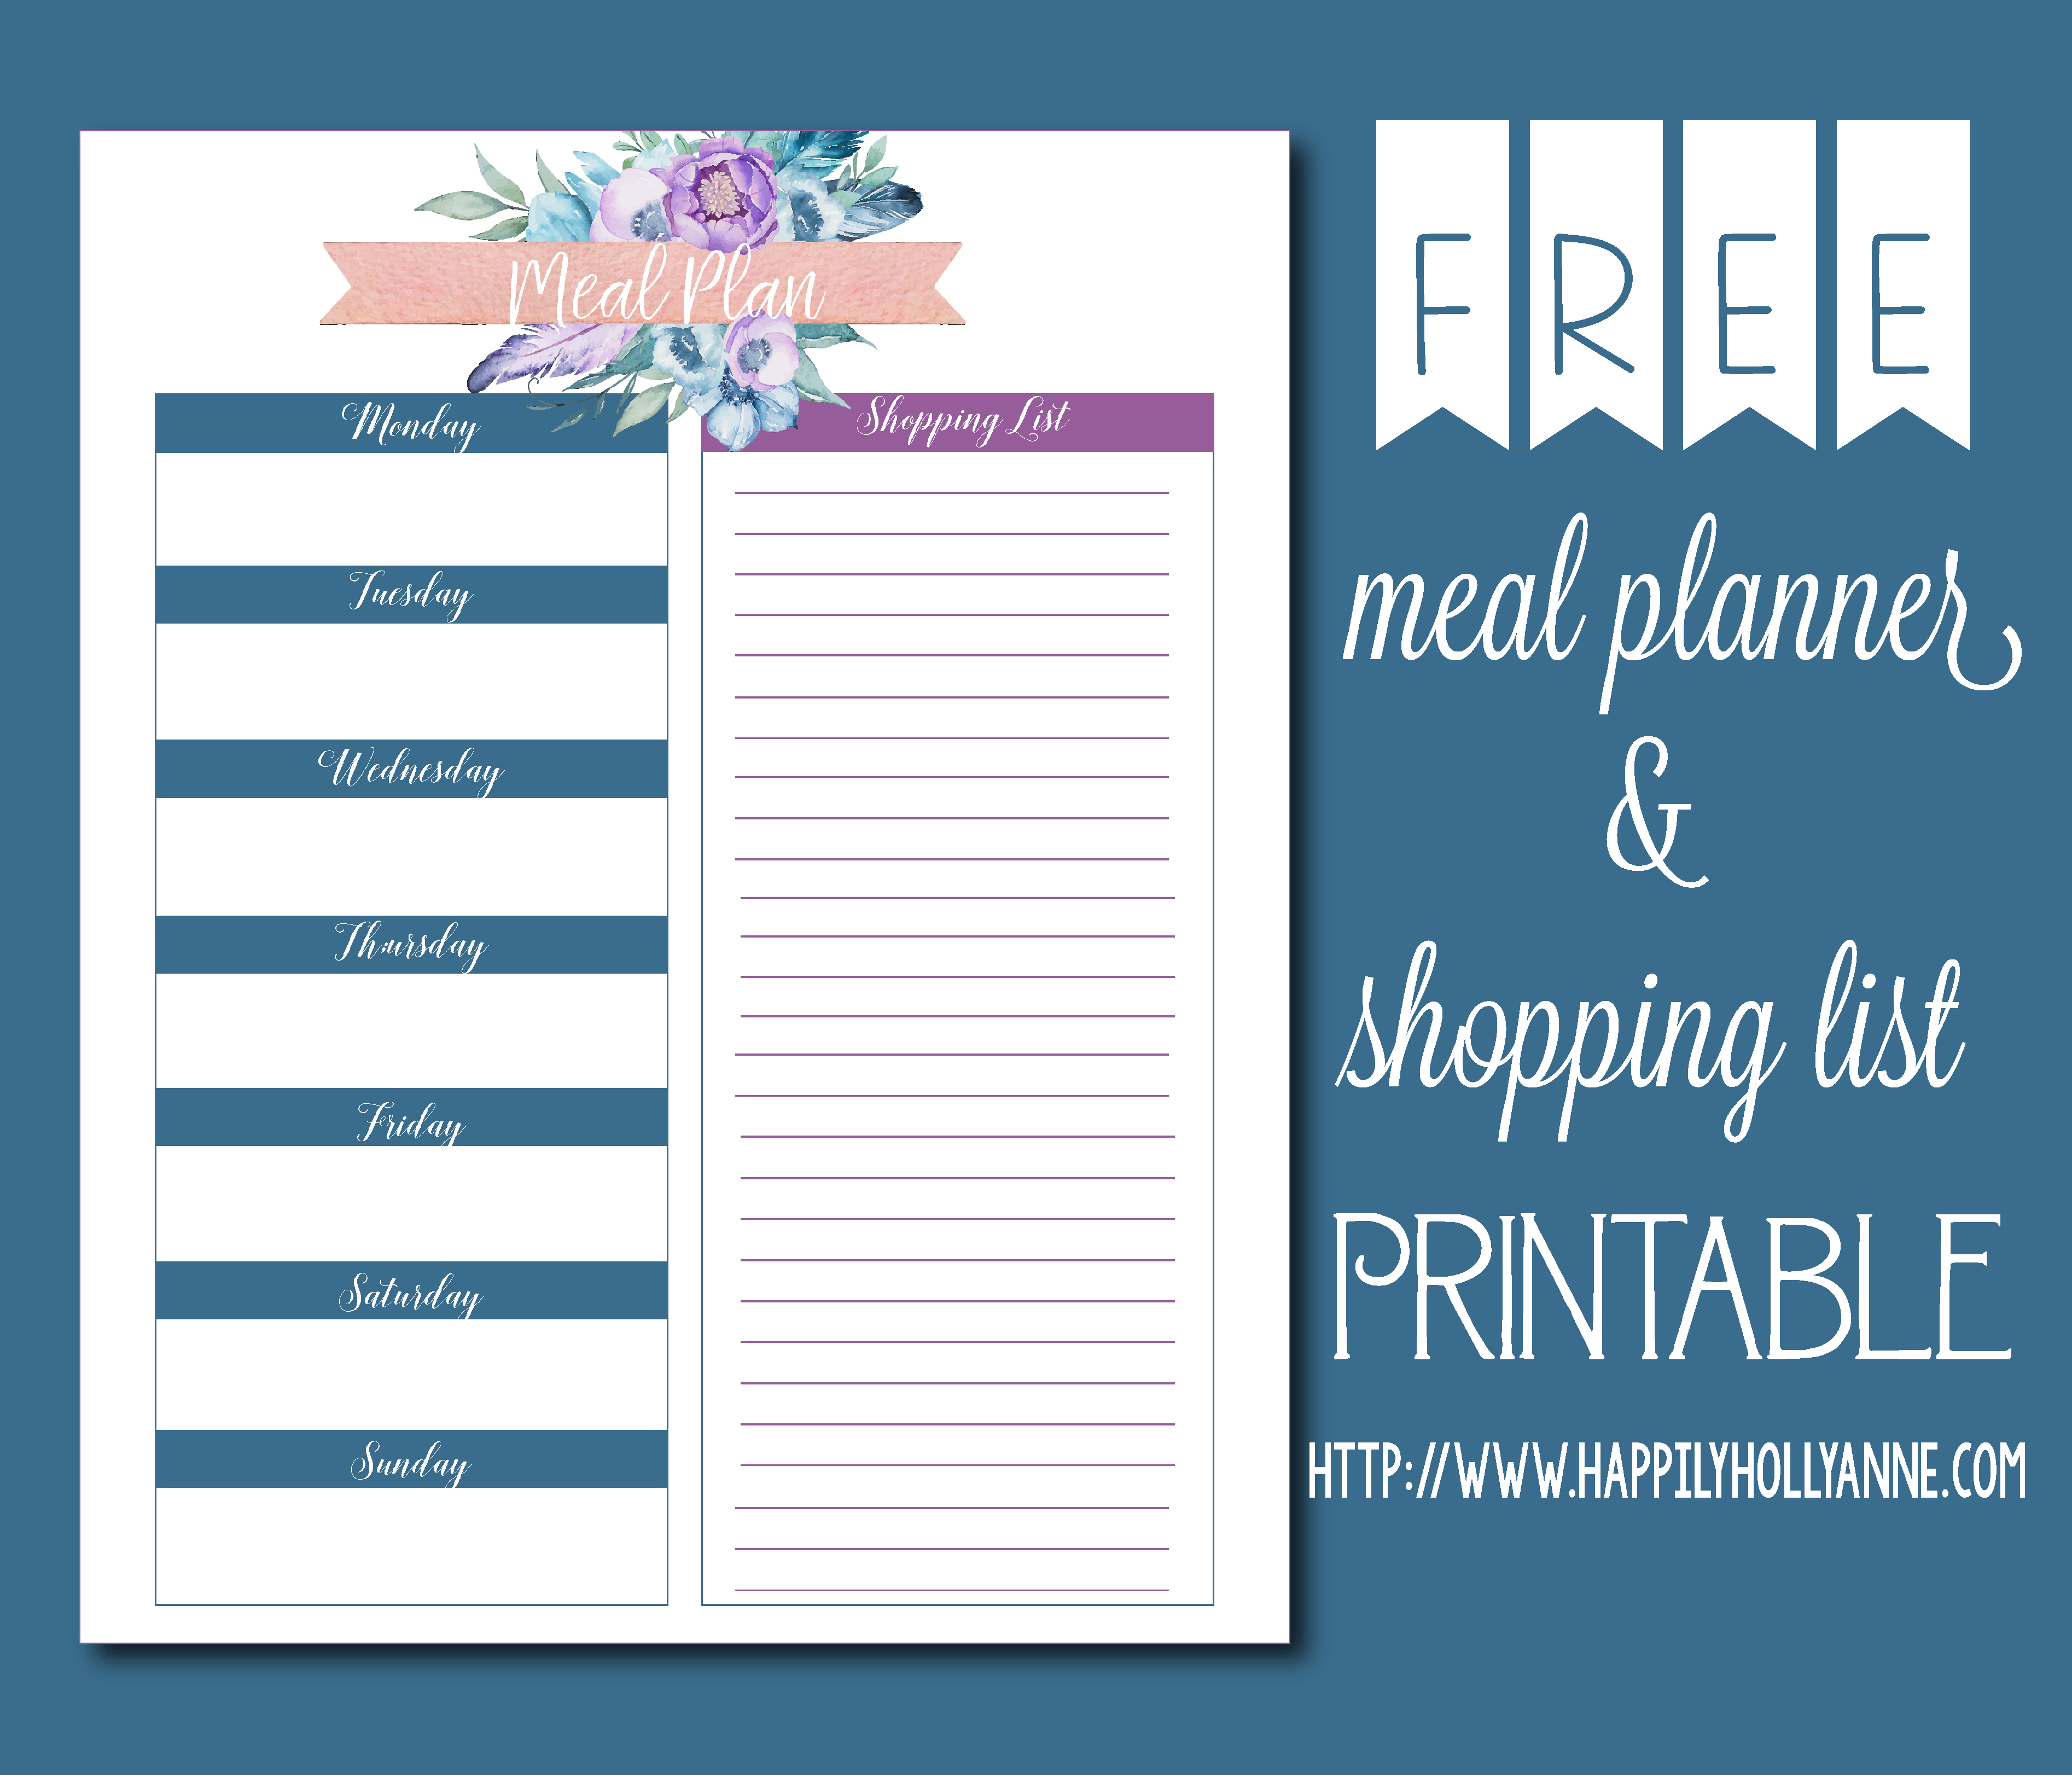 photo about Free Printable Menu Planner called No cost Printable Menu Planner - Holly Anne